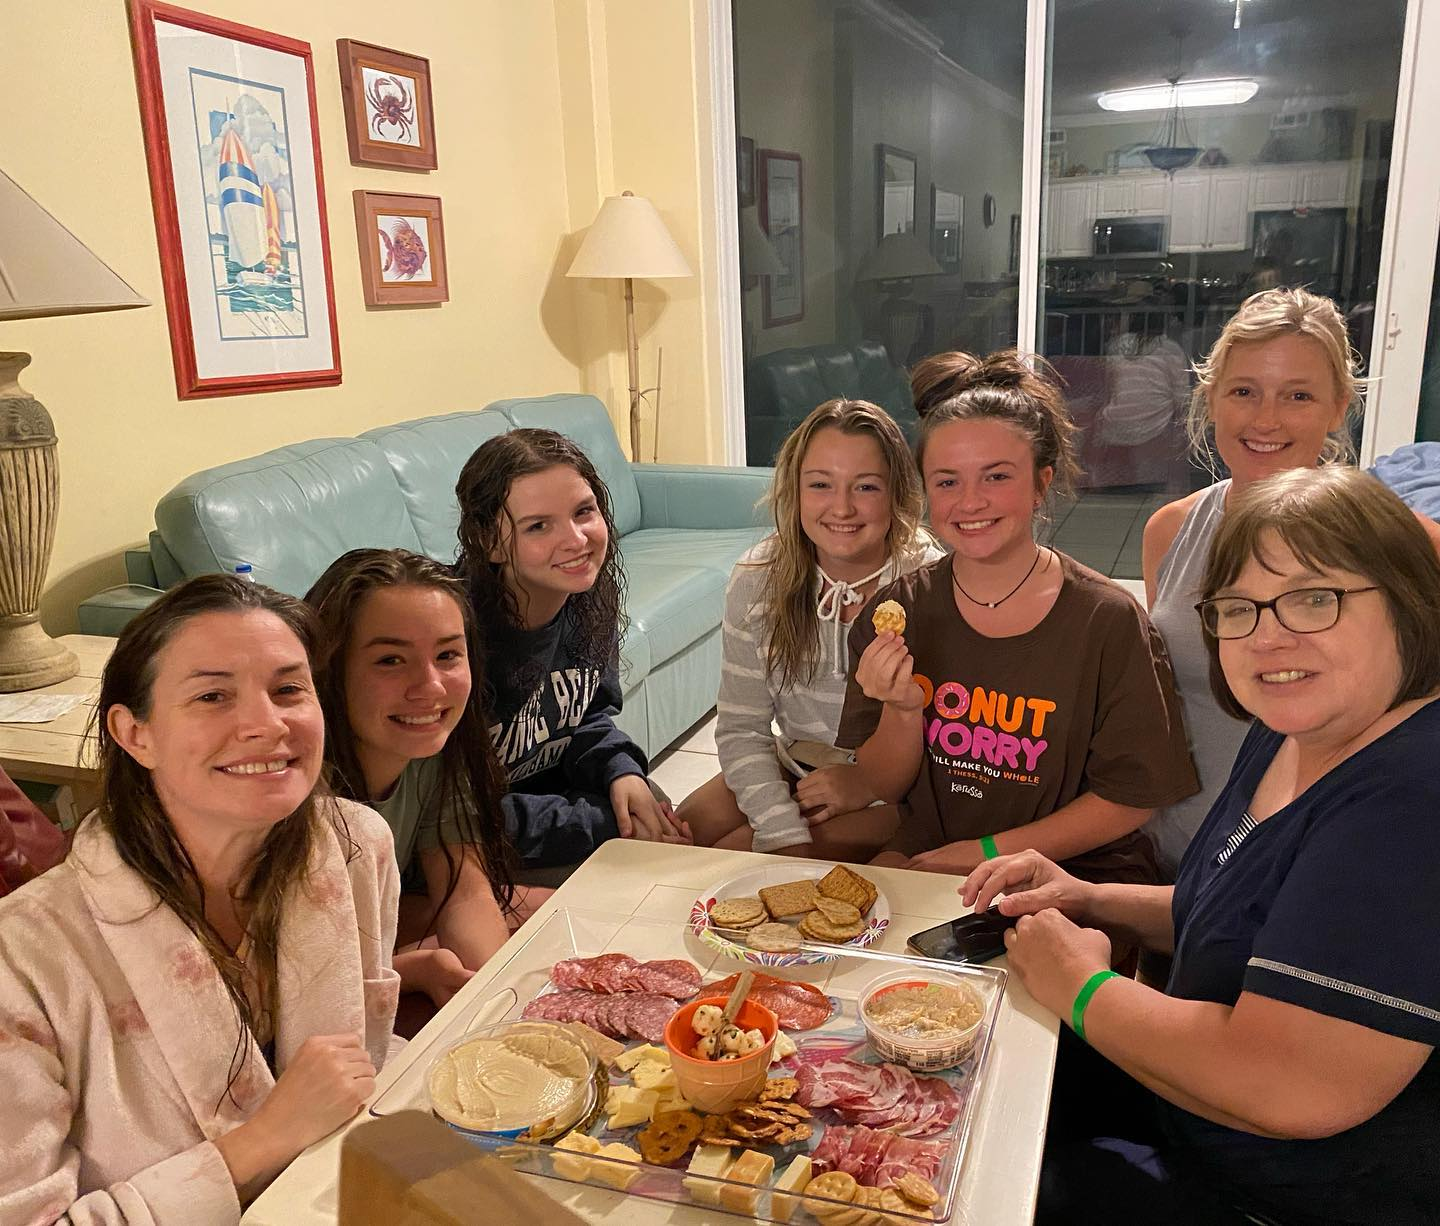 We made the best cheese and meat tray! great night playing games and laughing with our friends- best beach trip! #girlsbeachtrip #friendsnight #gameboardnight